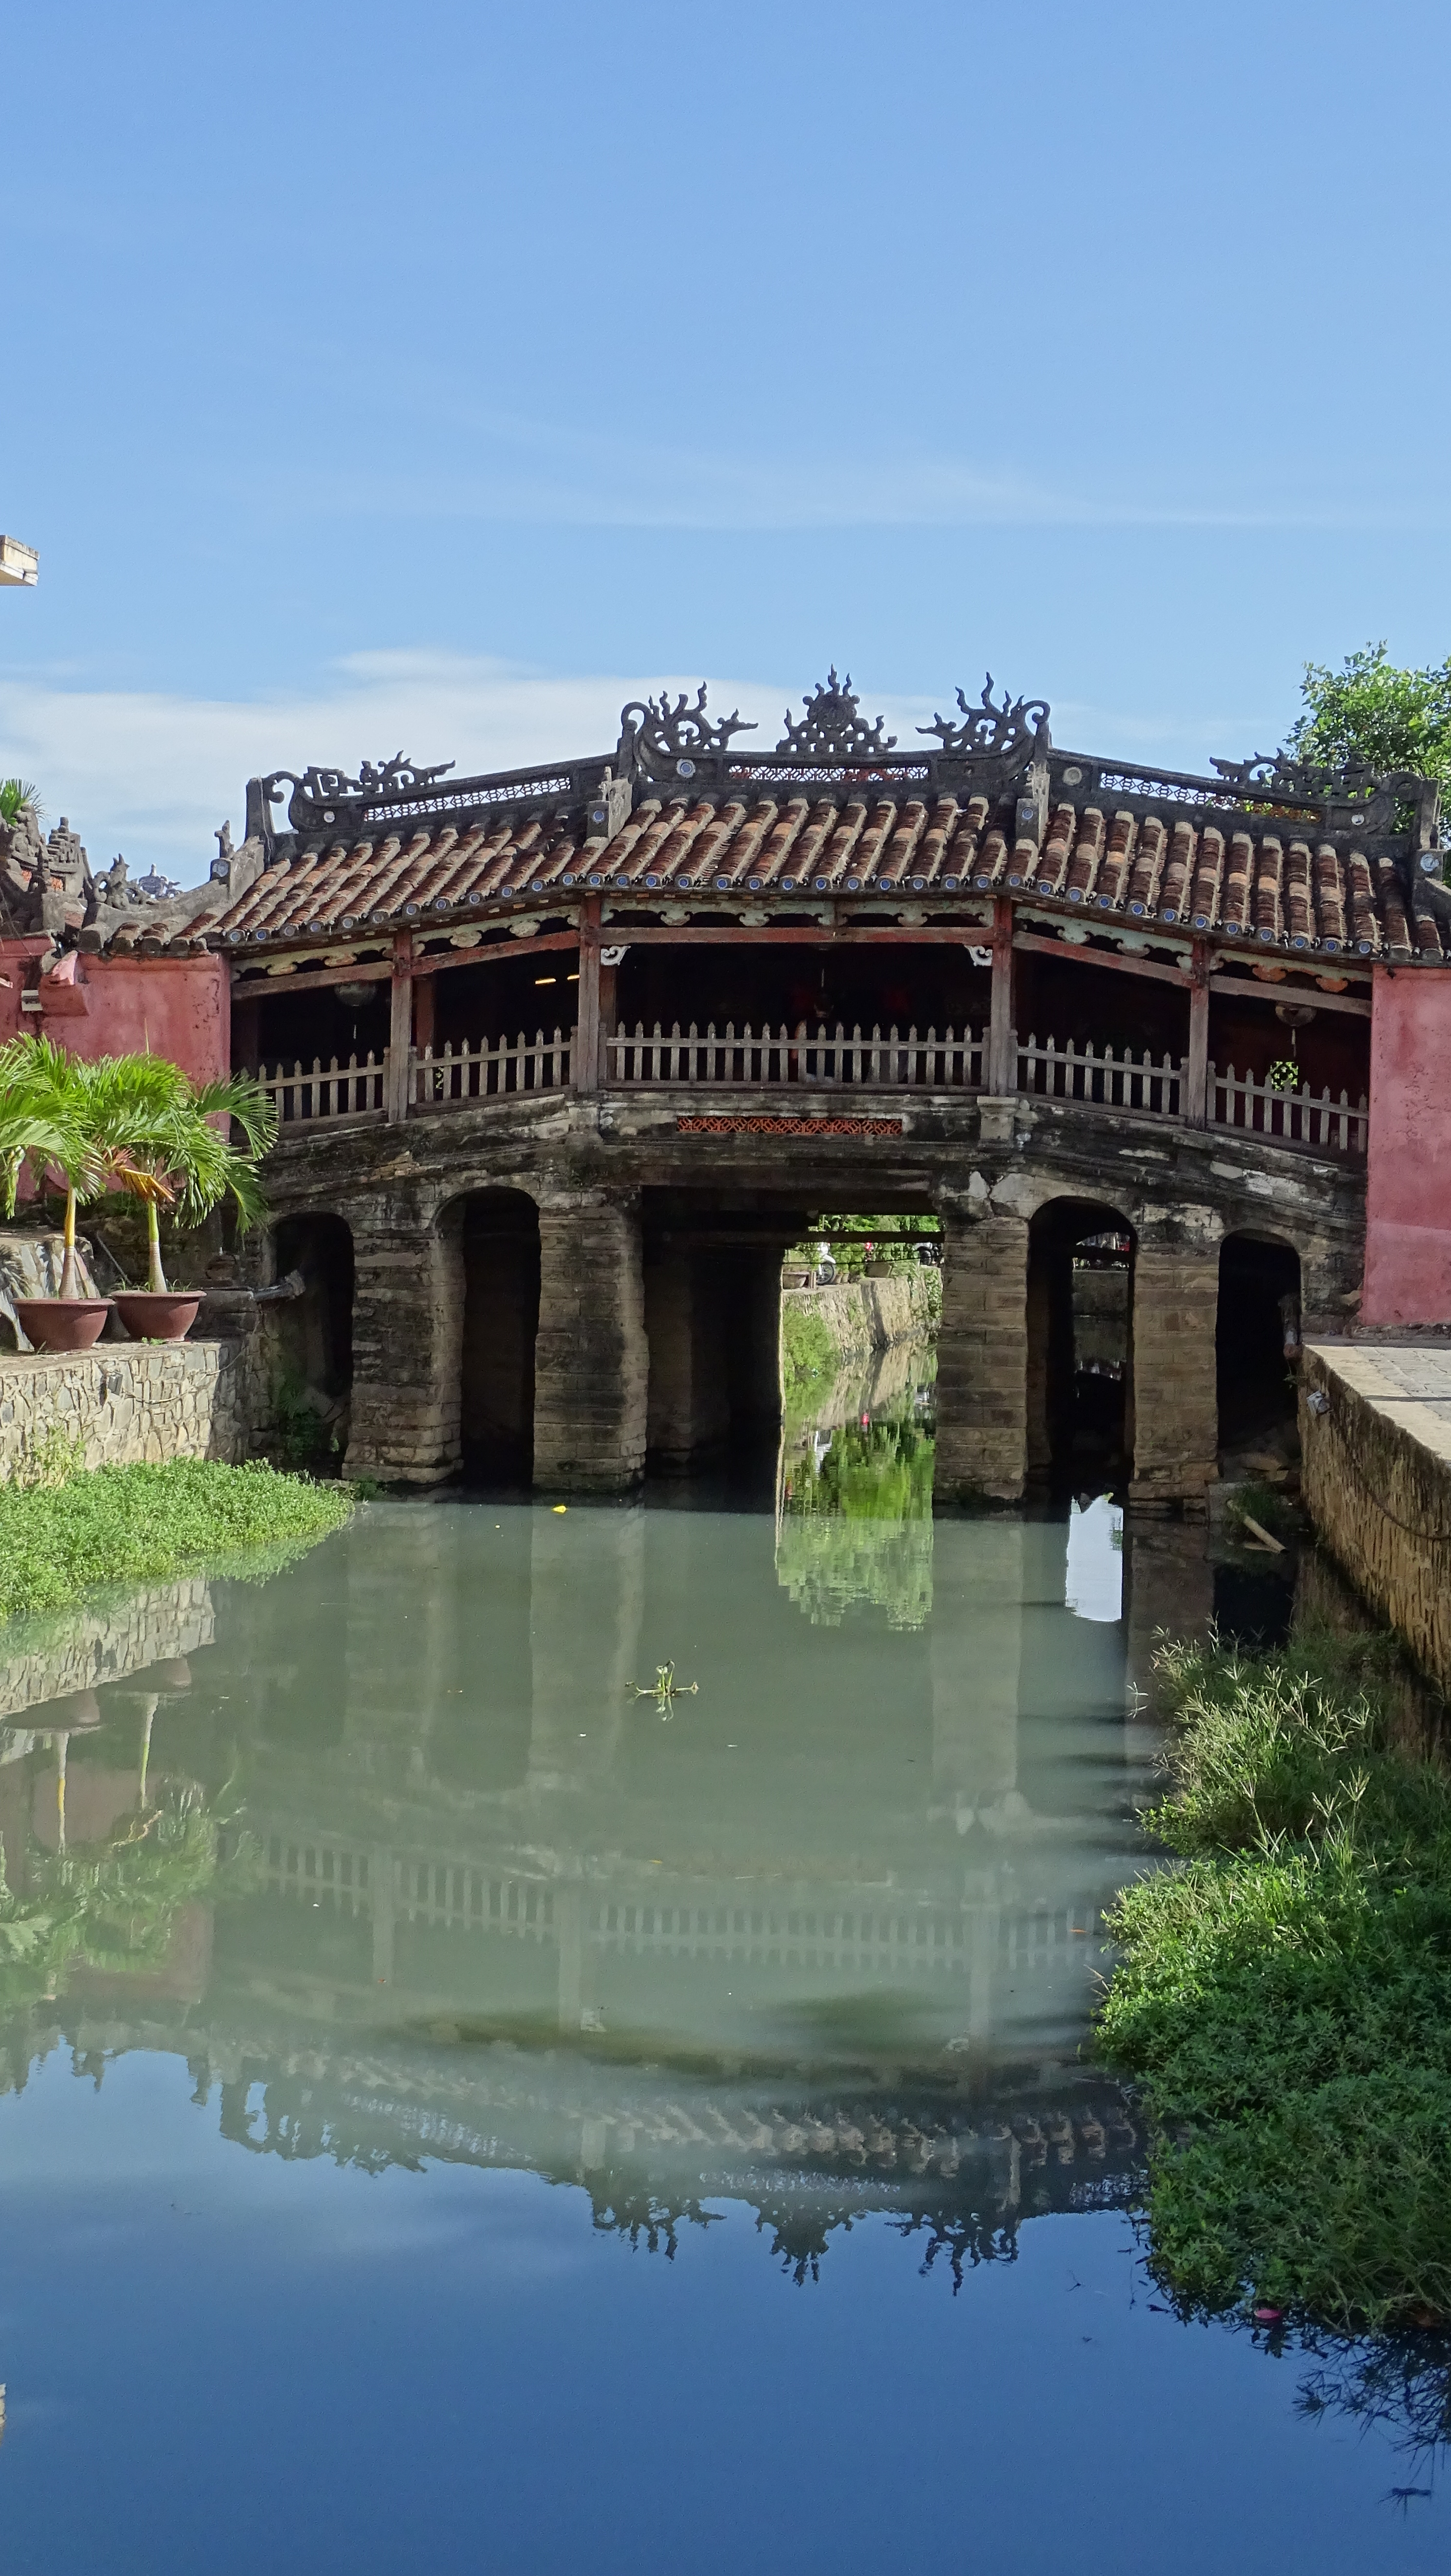 Covered stone Japanese Bridge reflecting in the canal below it